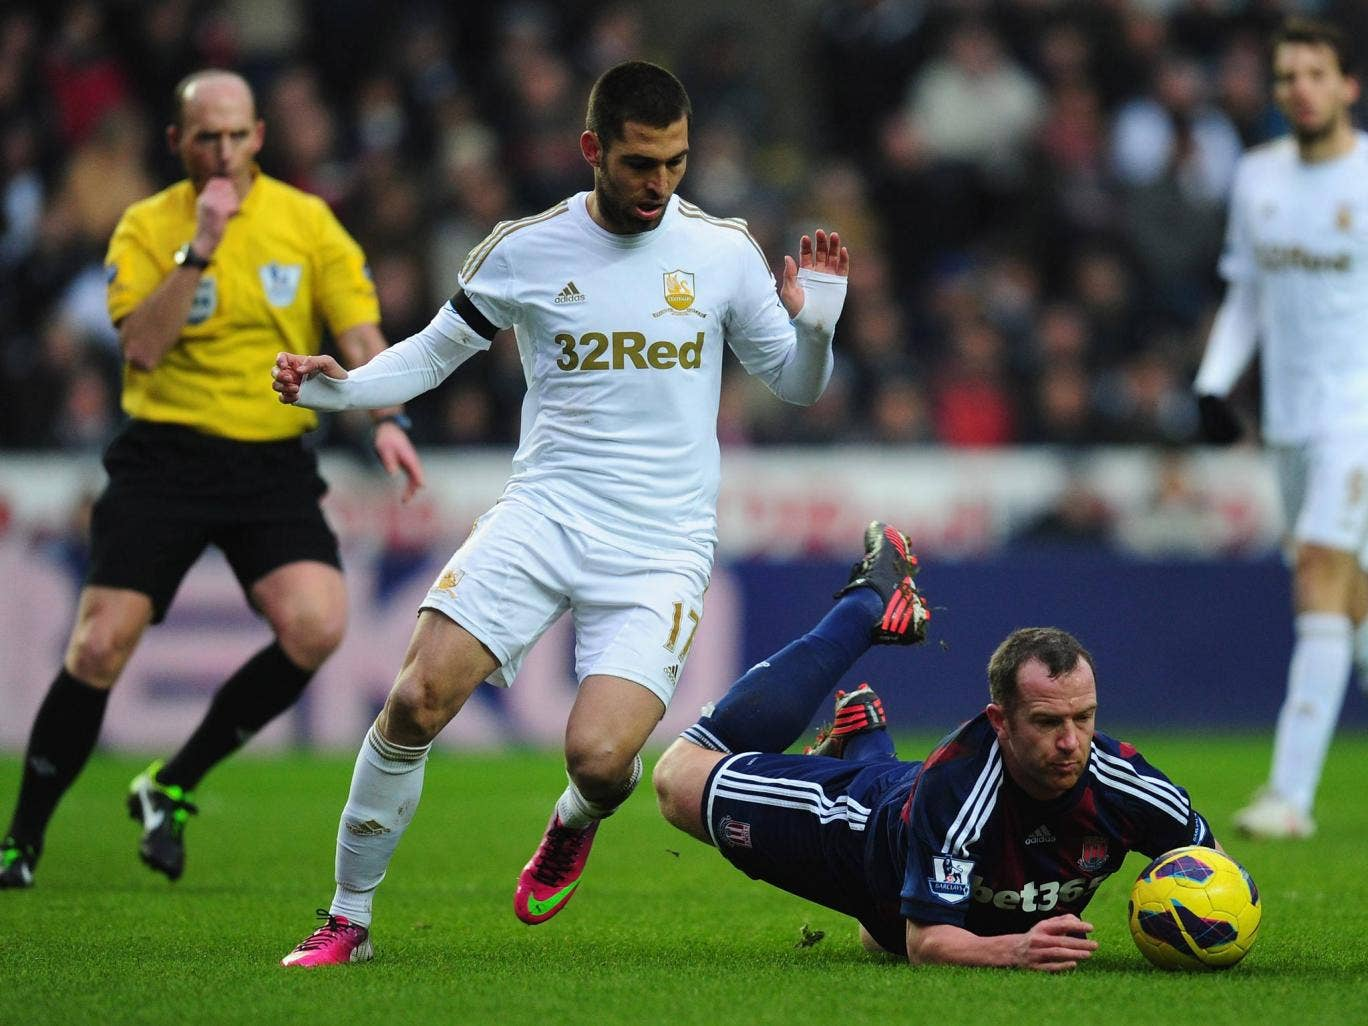 Stoke player Charlie Adam is fouled by Swansea player Itay Schechter